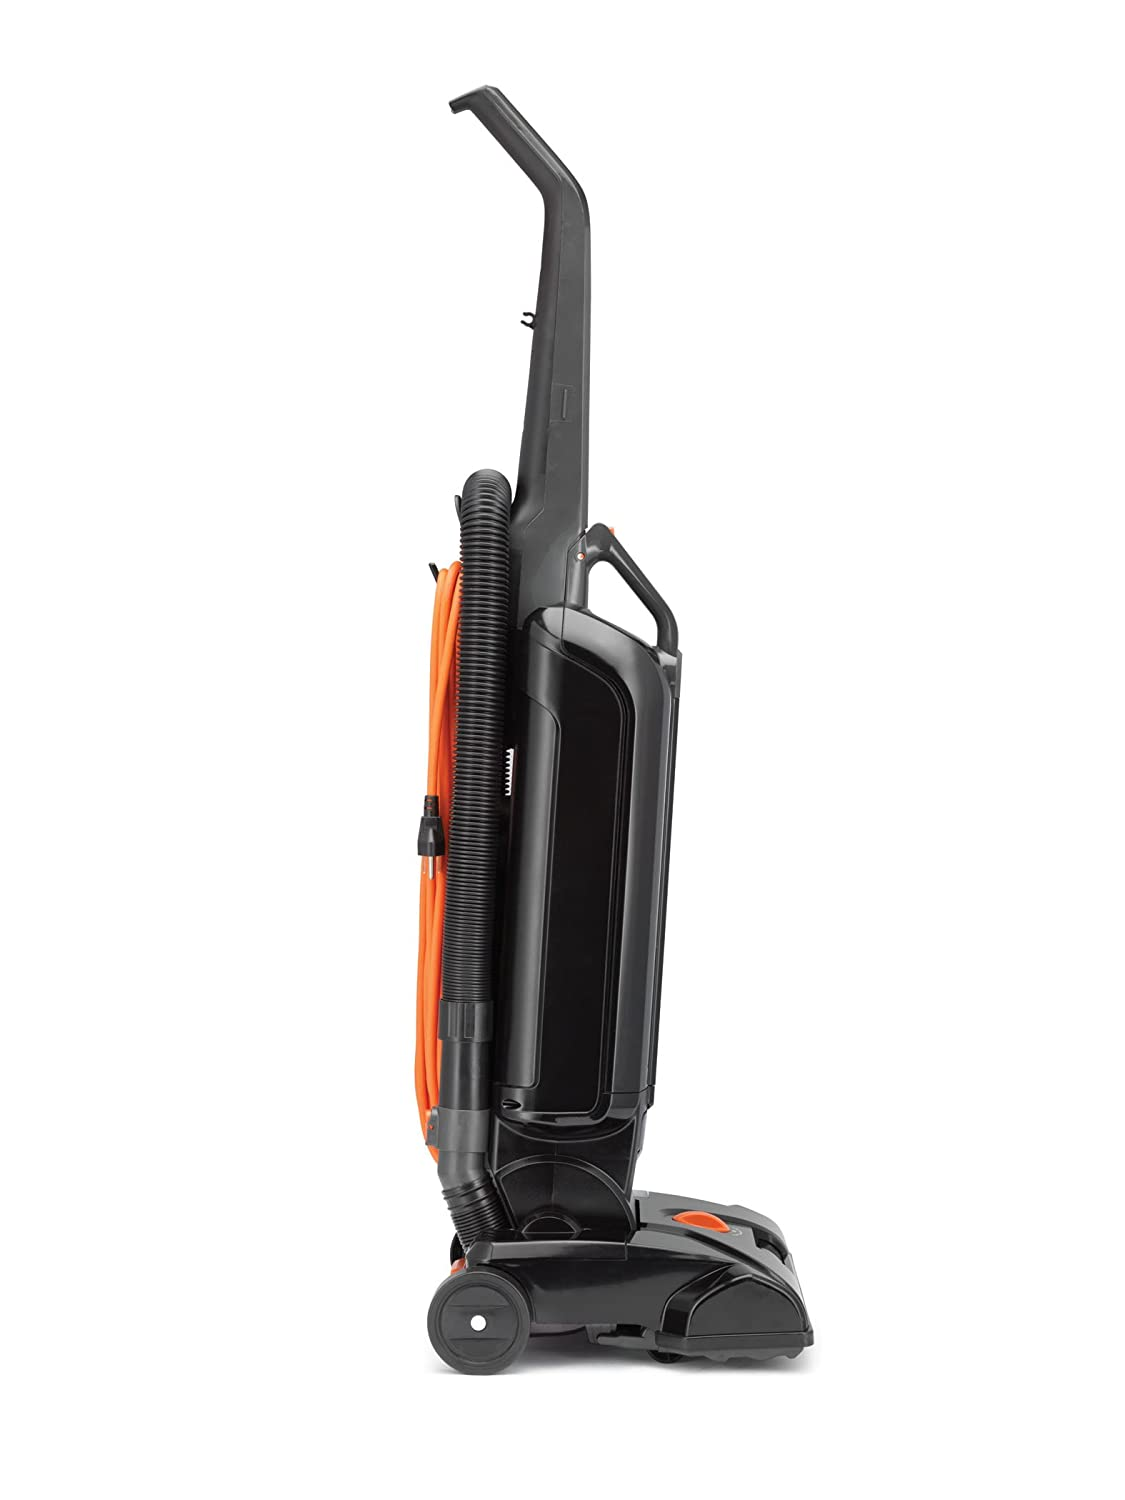 13-Inch Hoover Commercial CH53005 TaskVac Hard-Bagged Lightweight Upright Vacuum